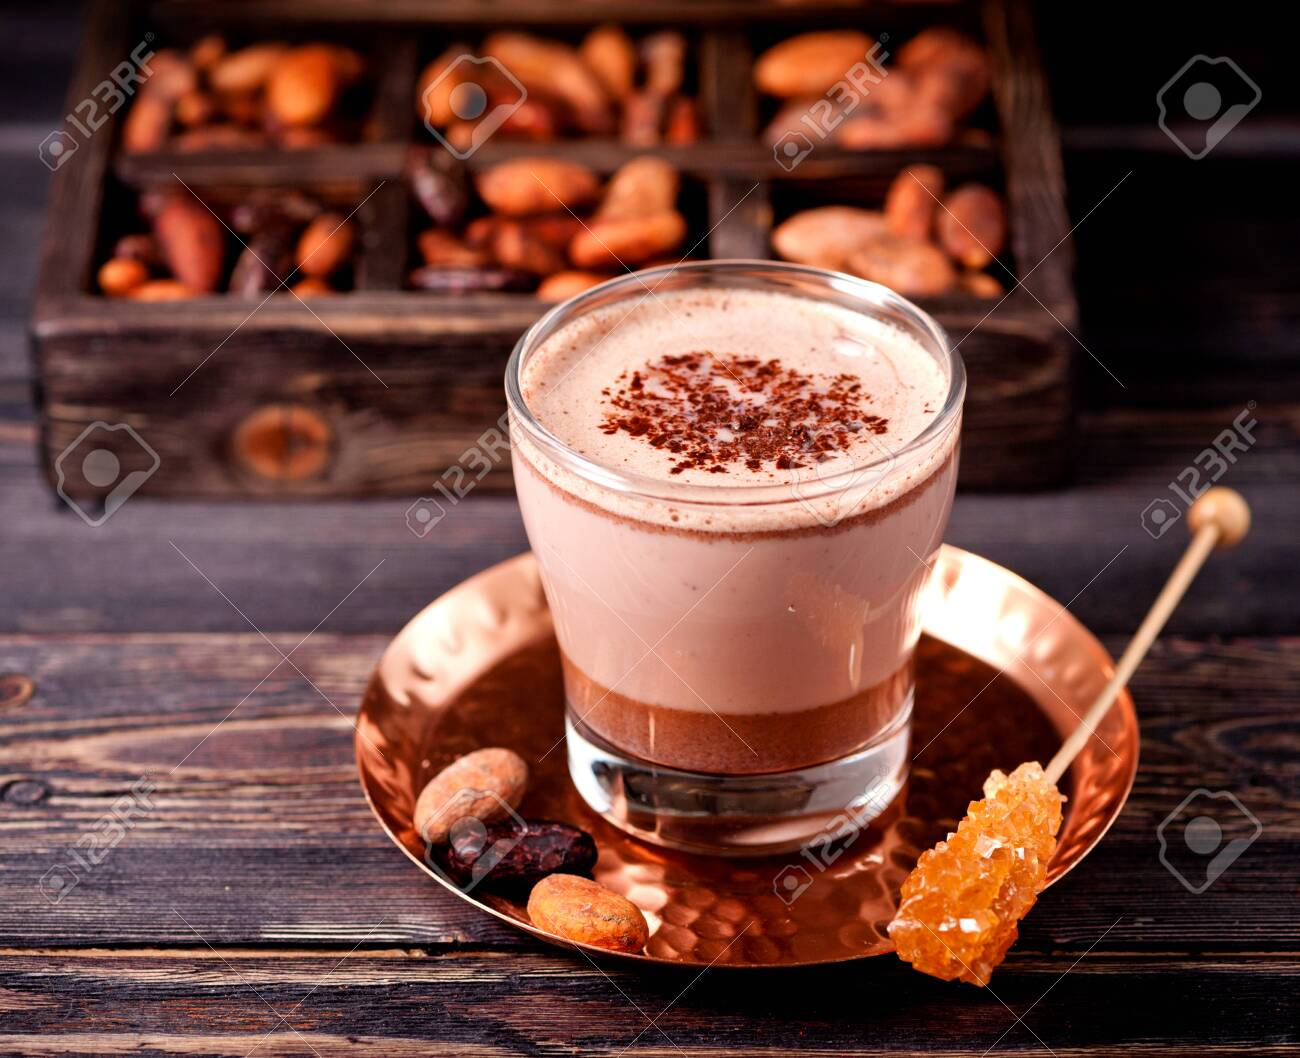 Hot chocolate or hot cocoa and cocoa beans - 149496928